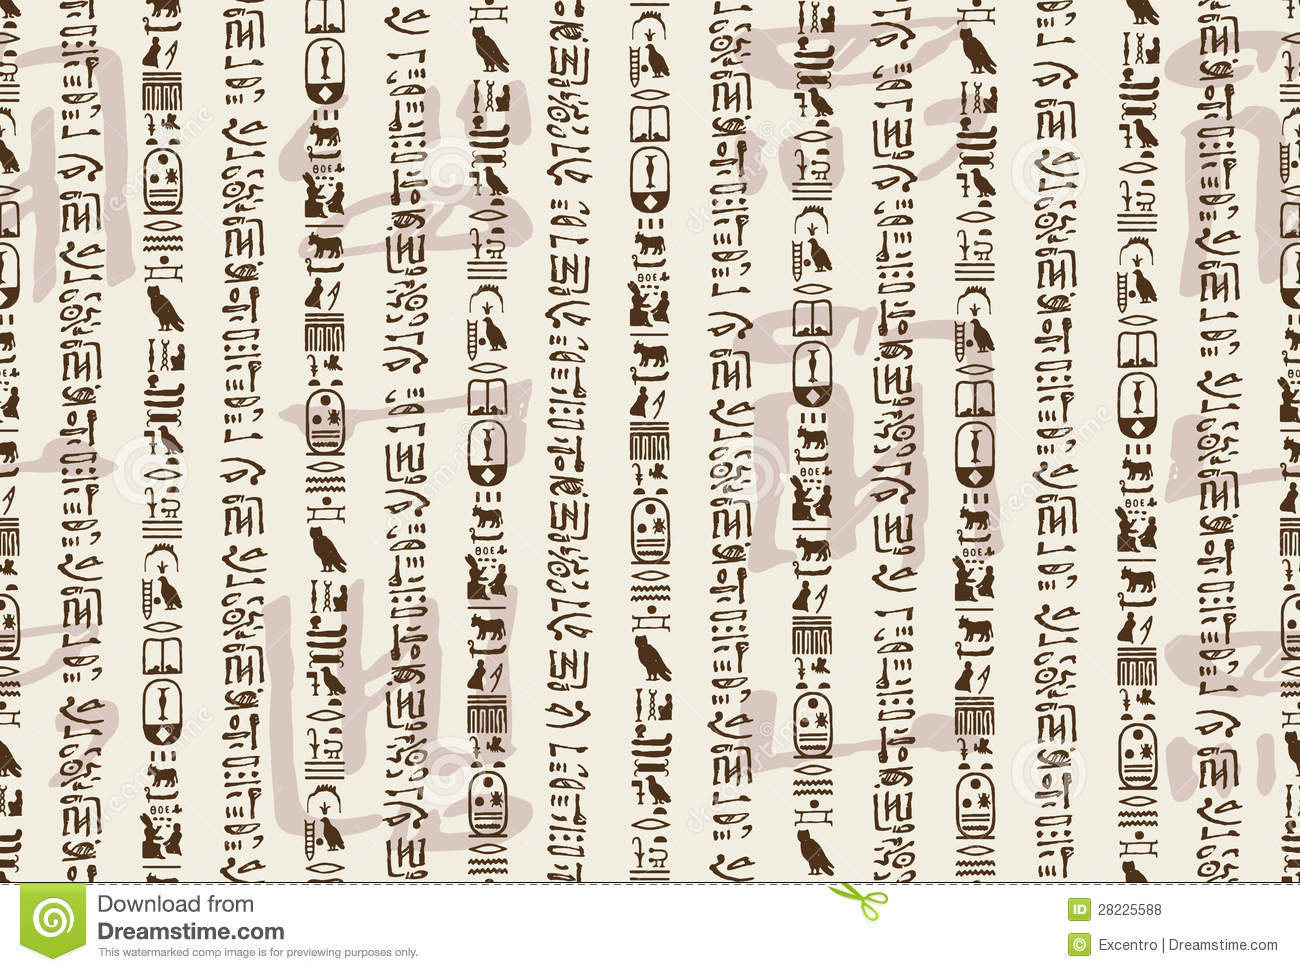 ... vector background created on base of the Hieroglyphic symbols